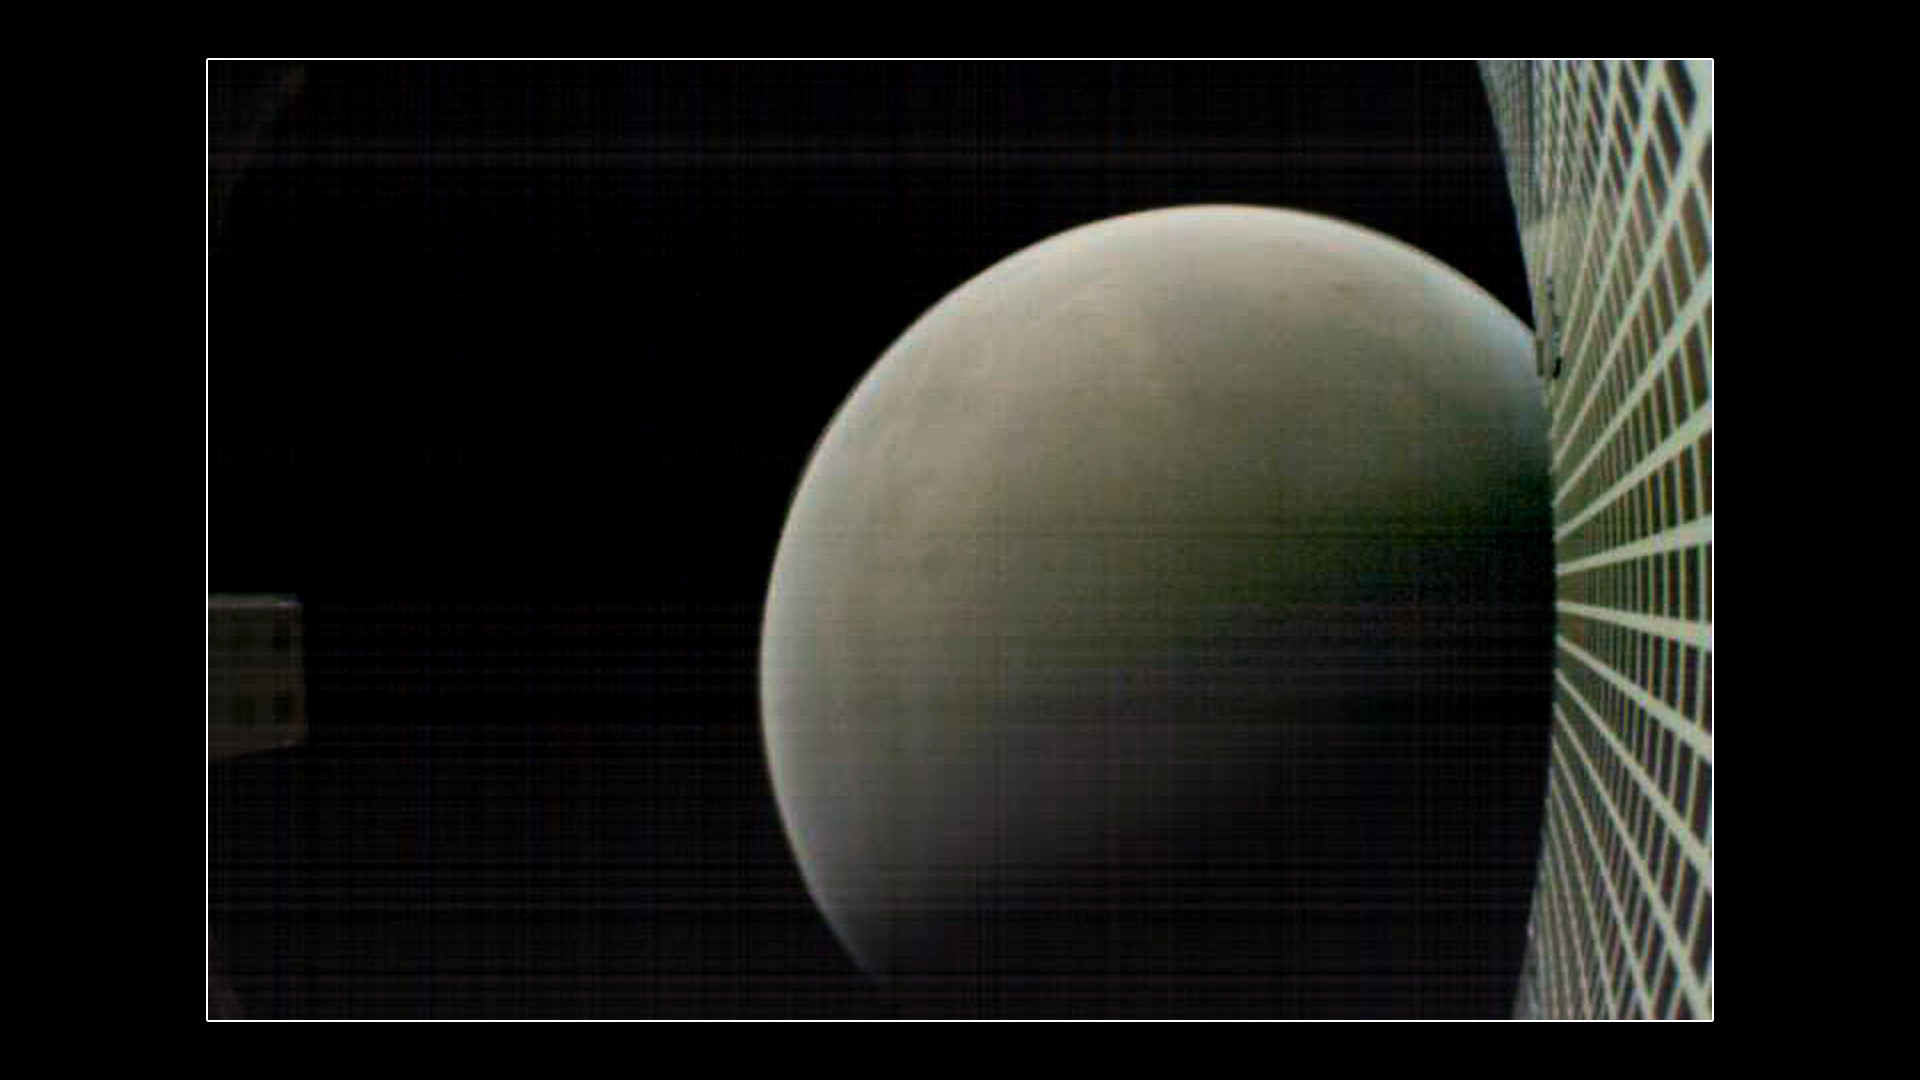 MarCO-B took this photo of Mars from about 7,600 kilometers away during its flyby on 26 Nov 2018